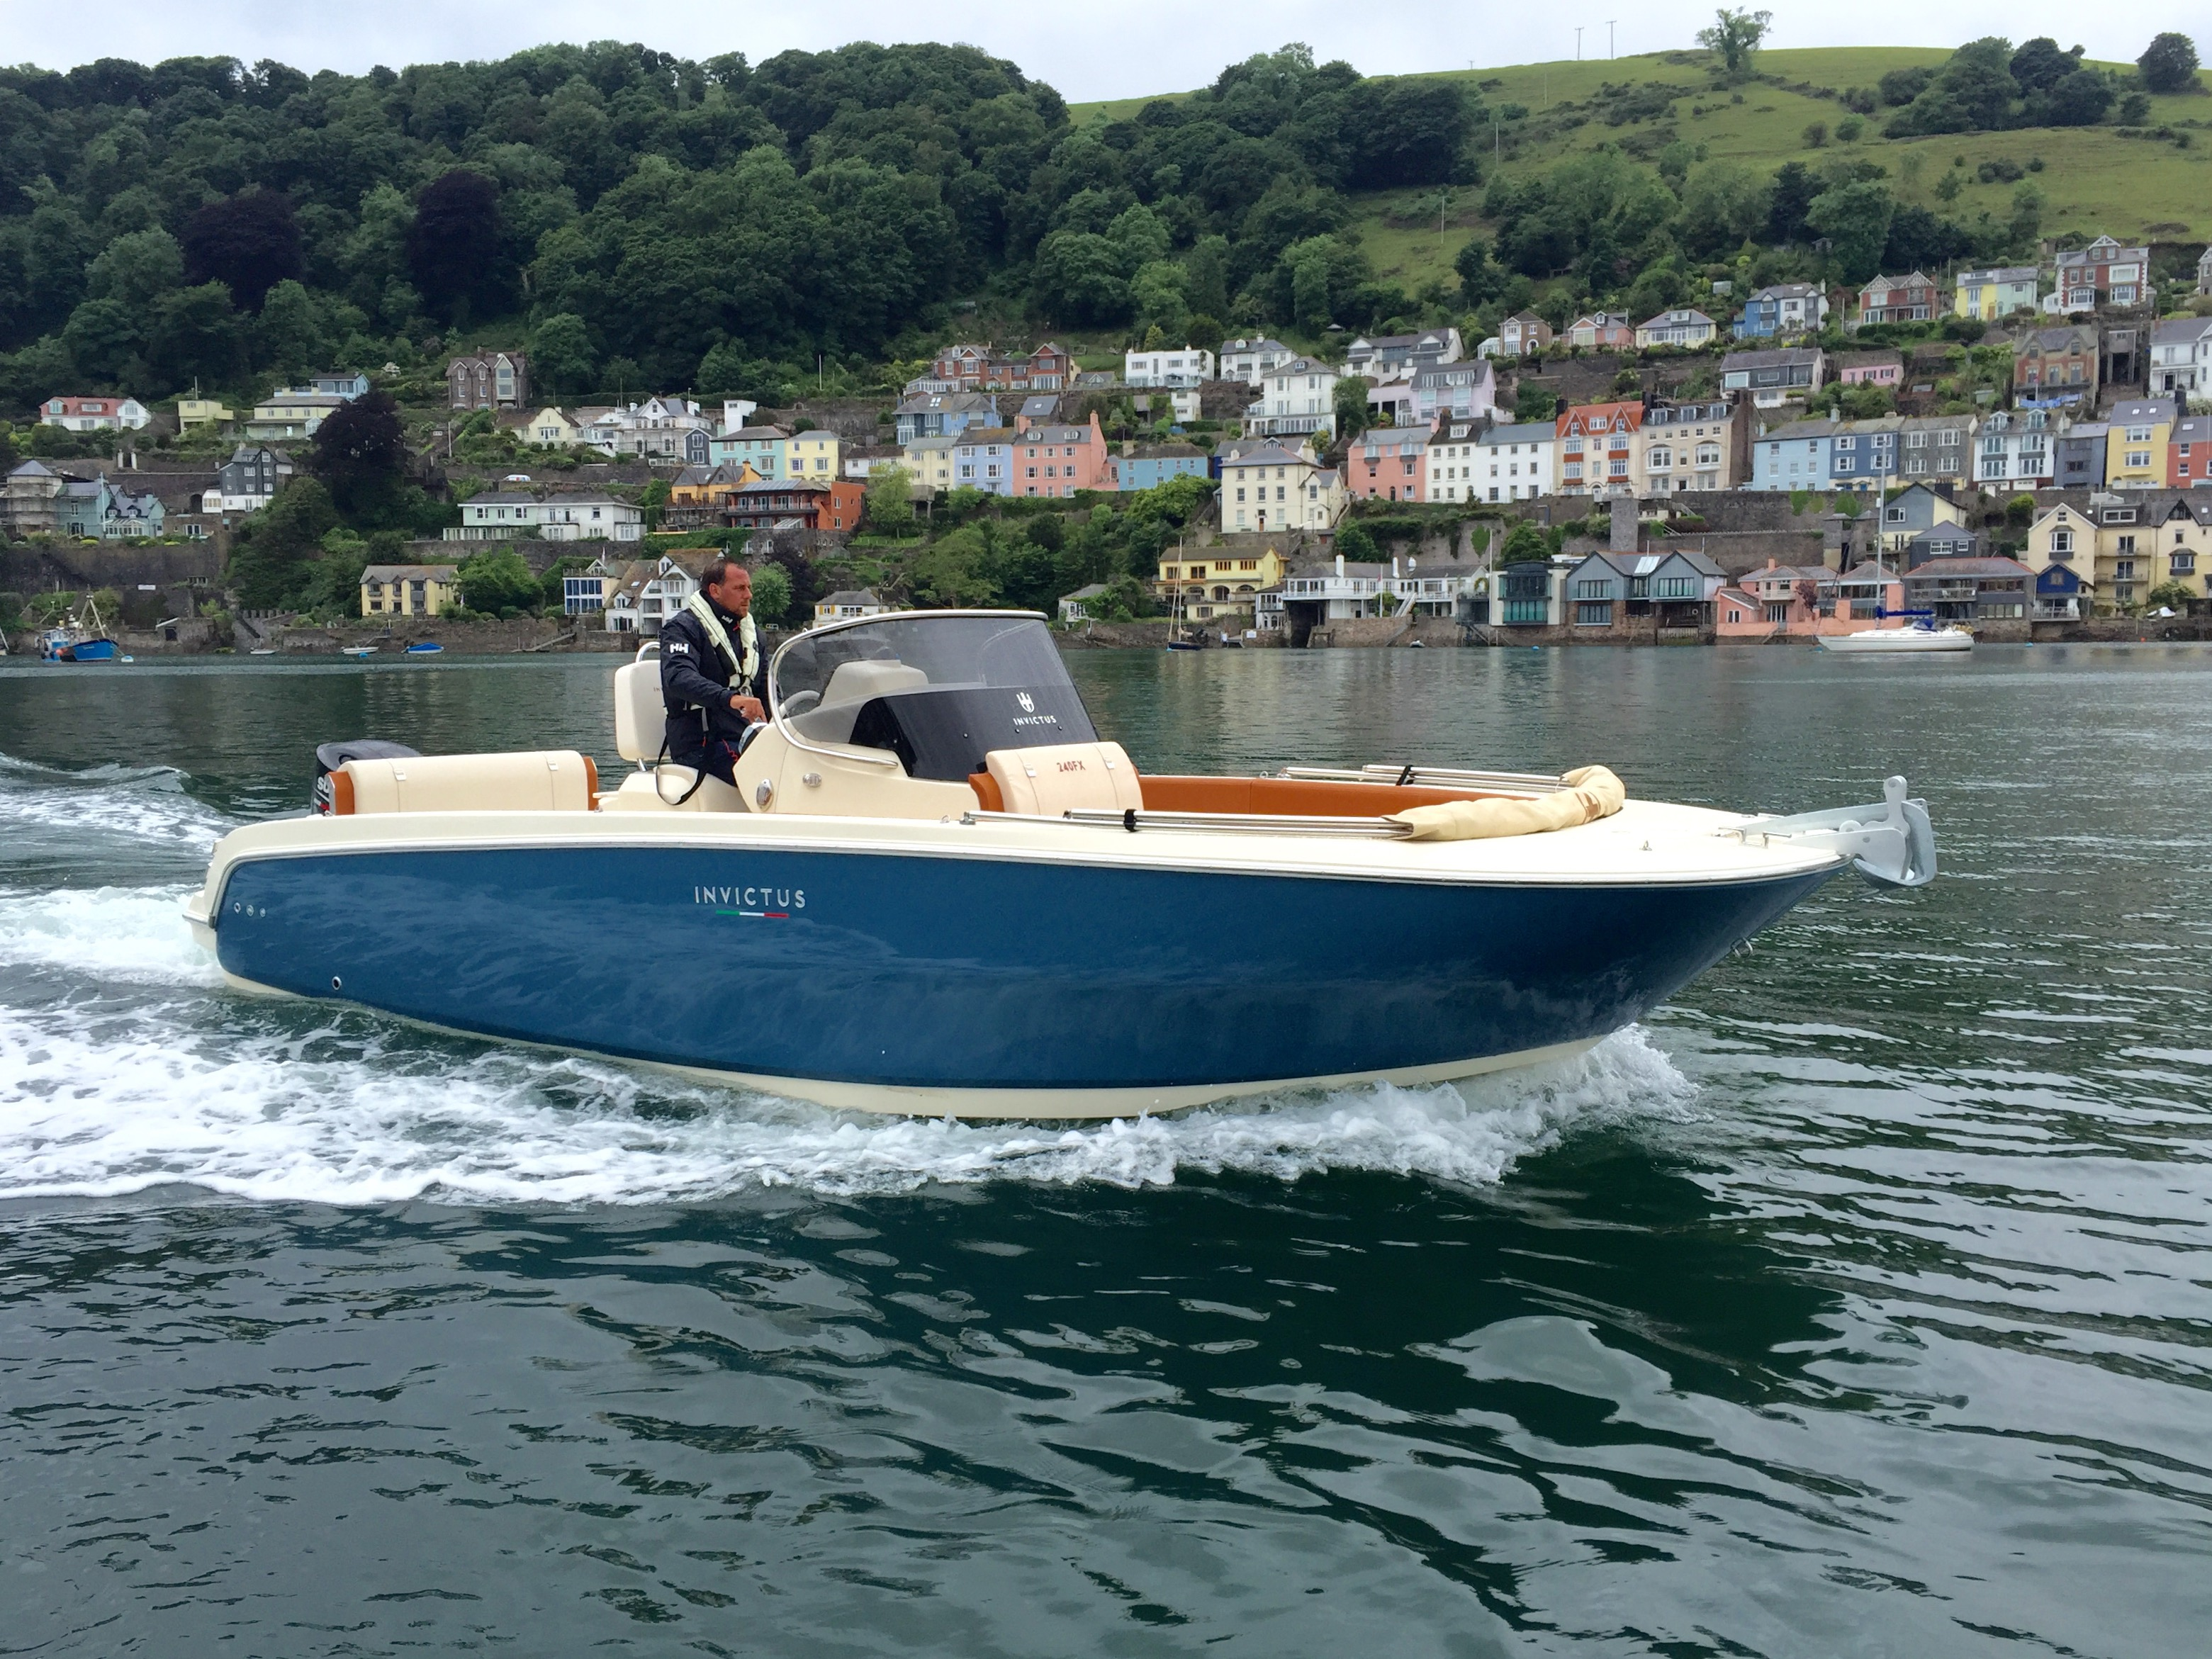 Invictus 240FX on Photo shoot in Dartmouth for MBY